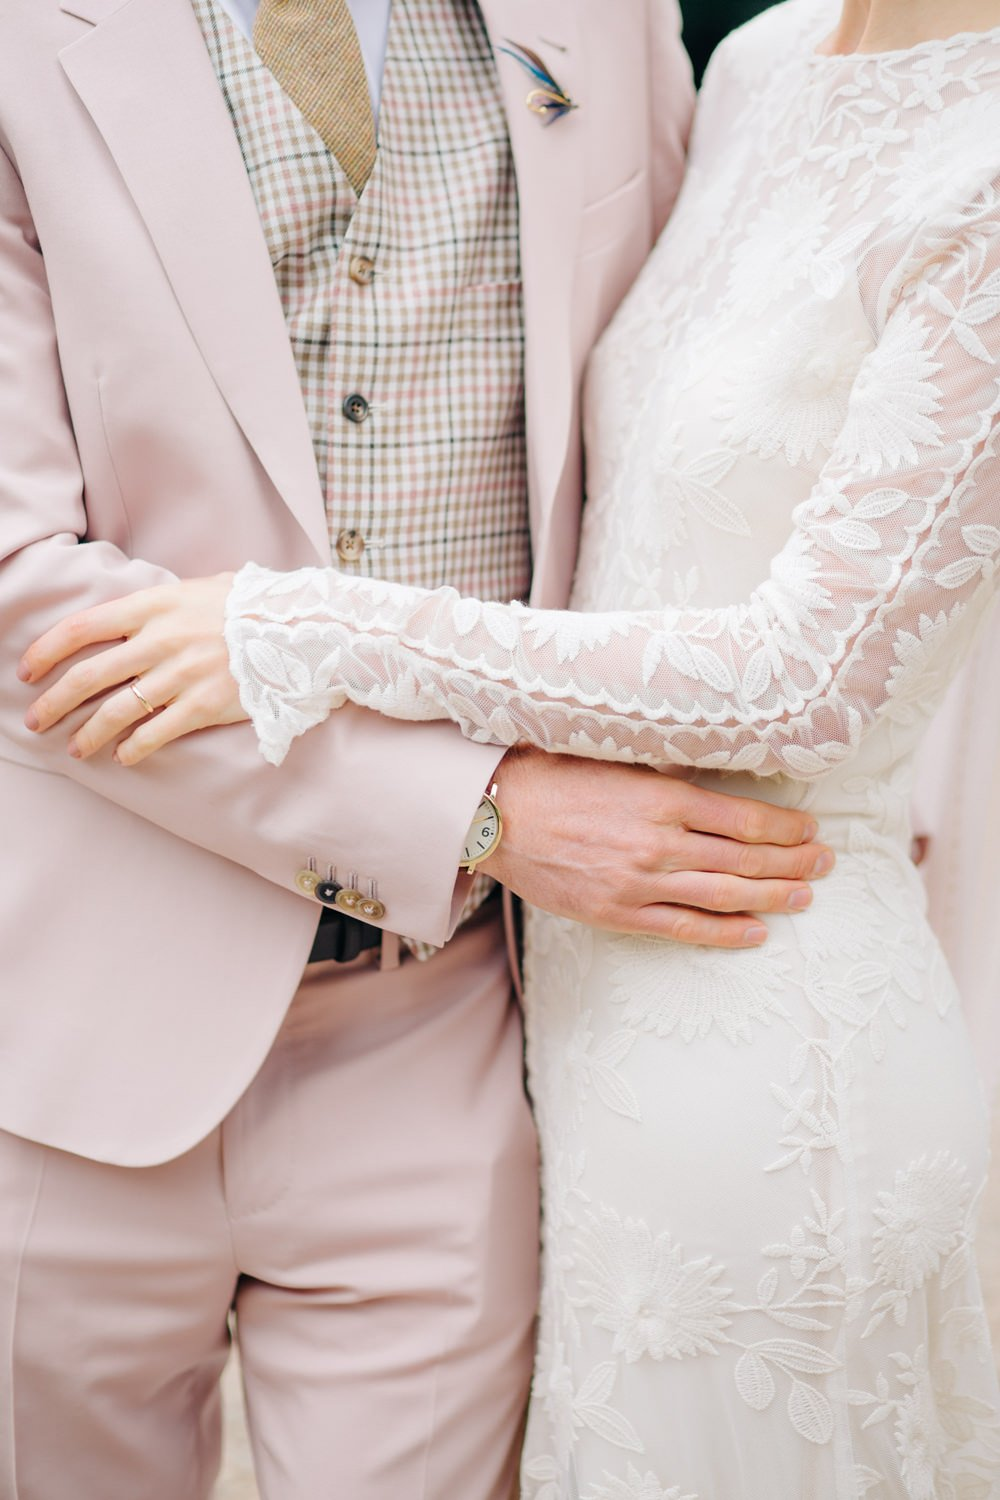 How To Find The Best Spring Wedding Suit - Up your pastel game | CHWV